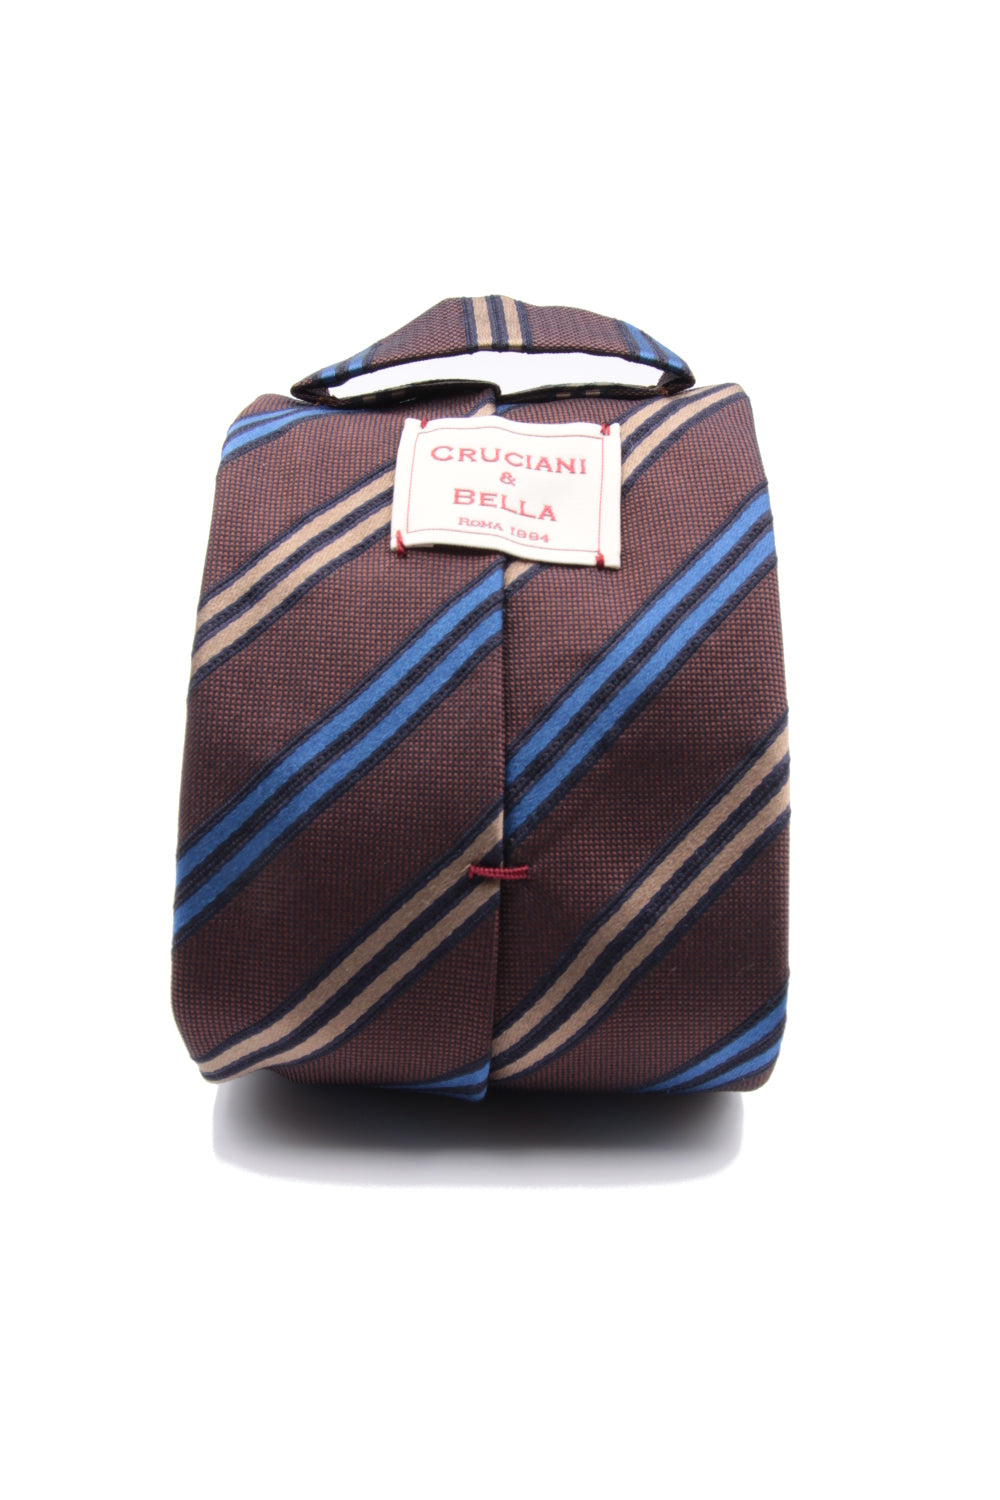 Brown, royal blue and light brown stripe tie